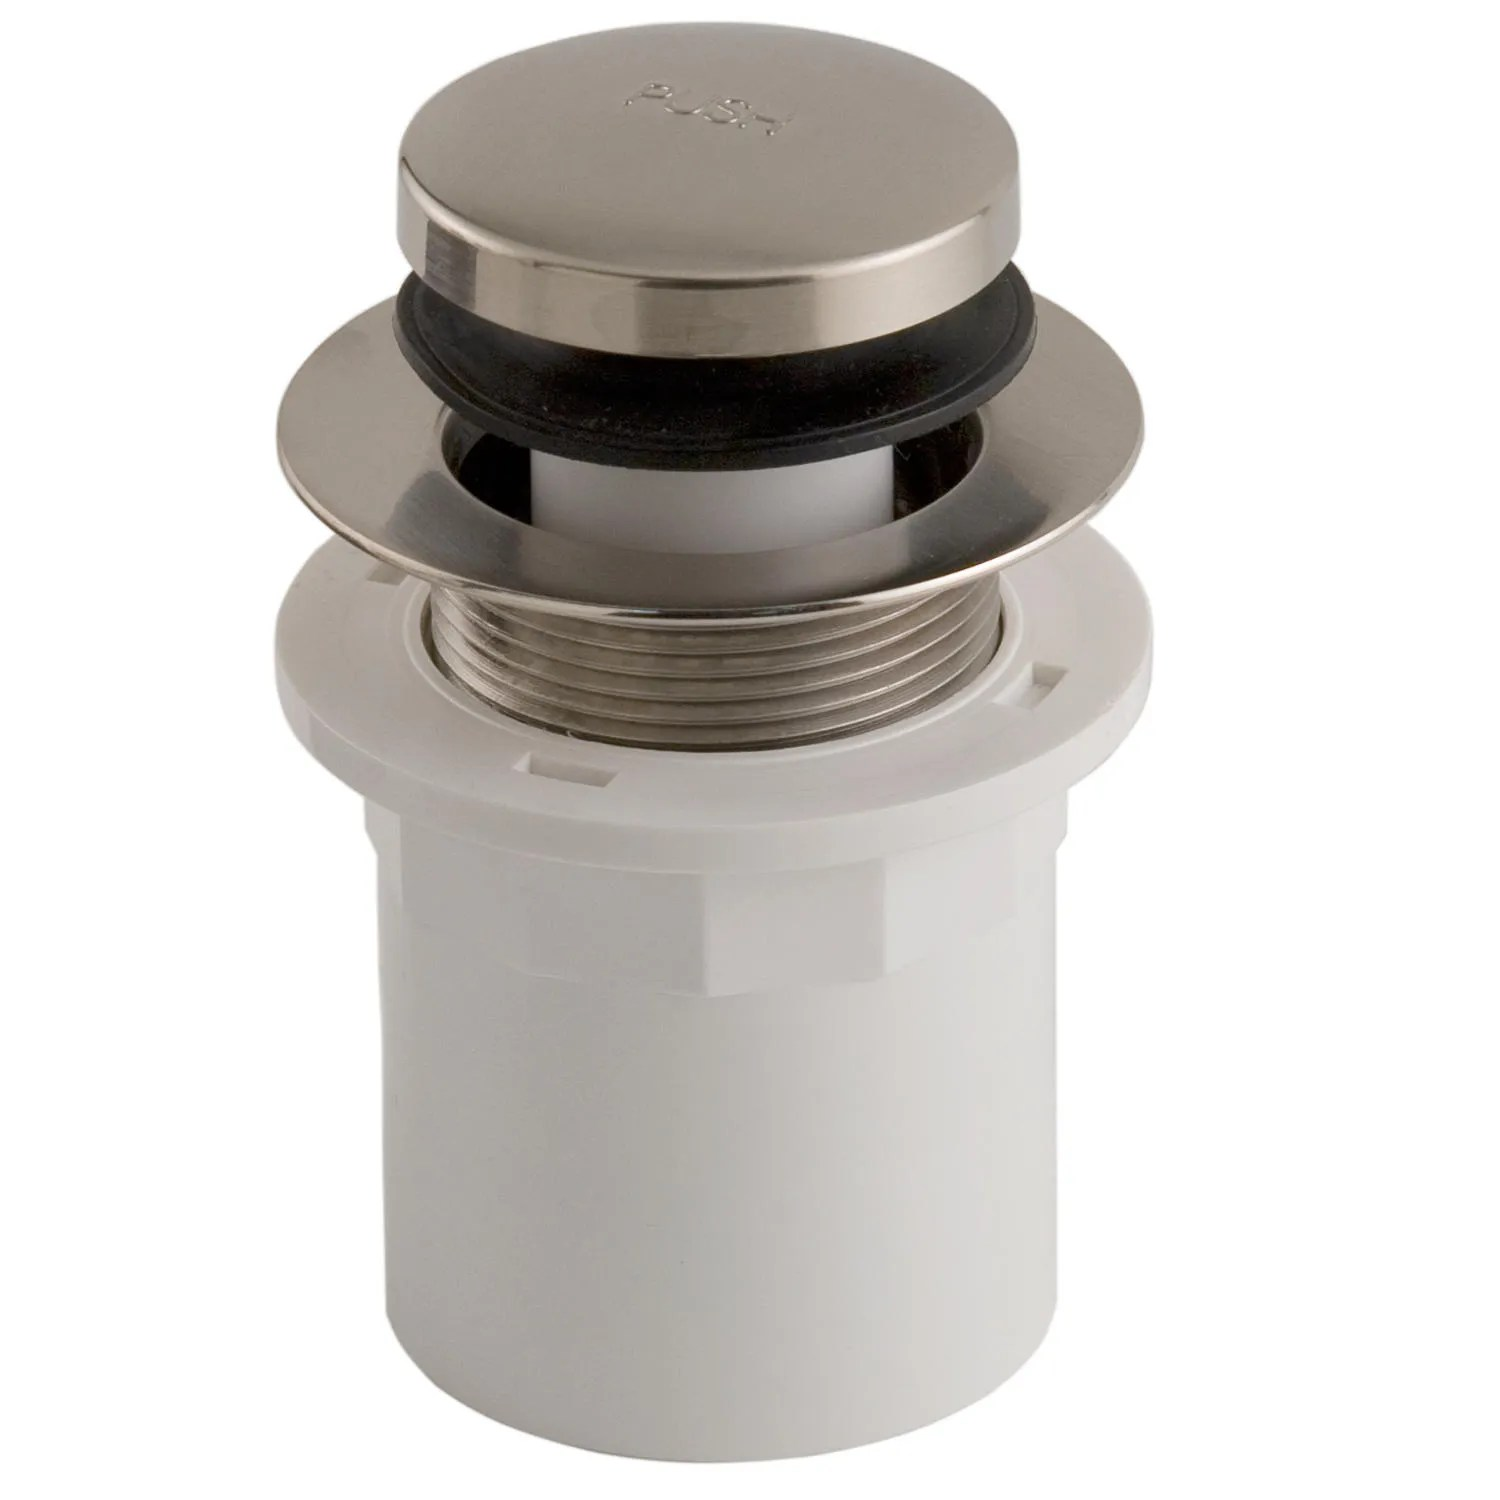 PopUp Tub Drain with Hub Adaptor  Brushed Nickel  eBay